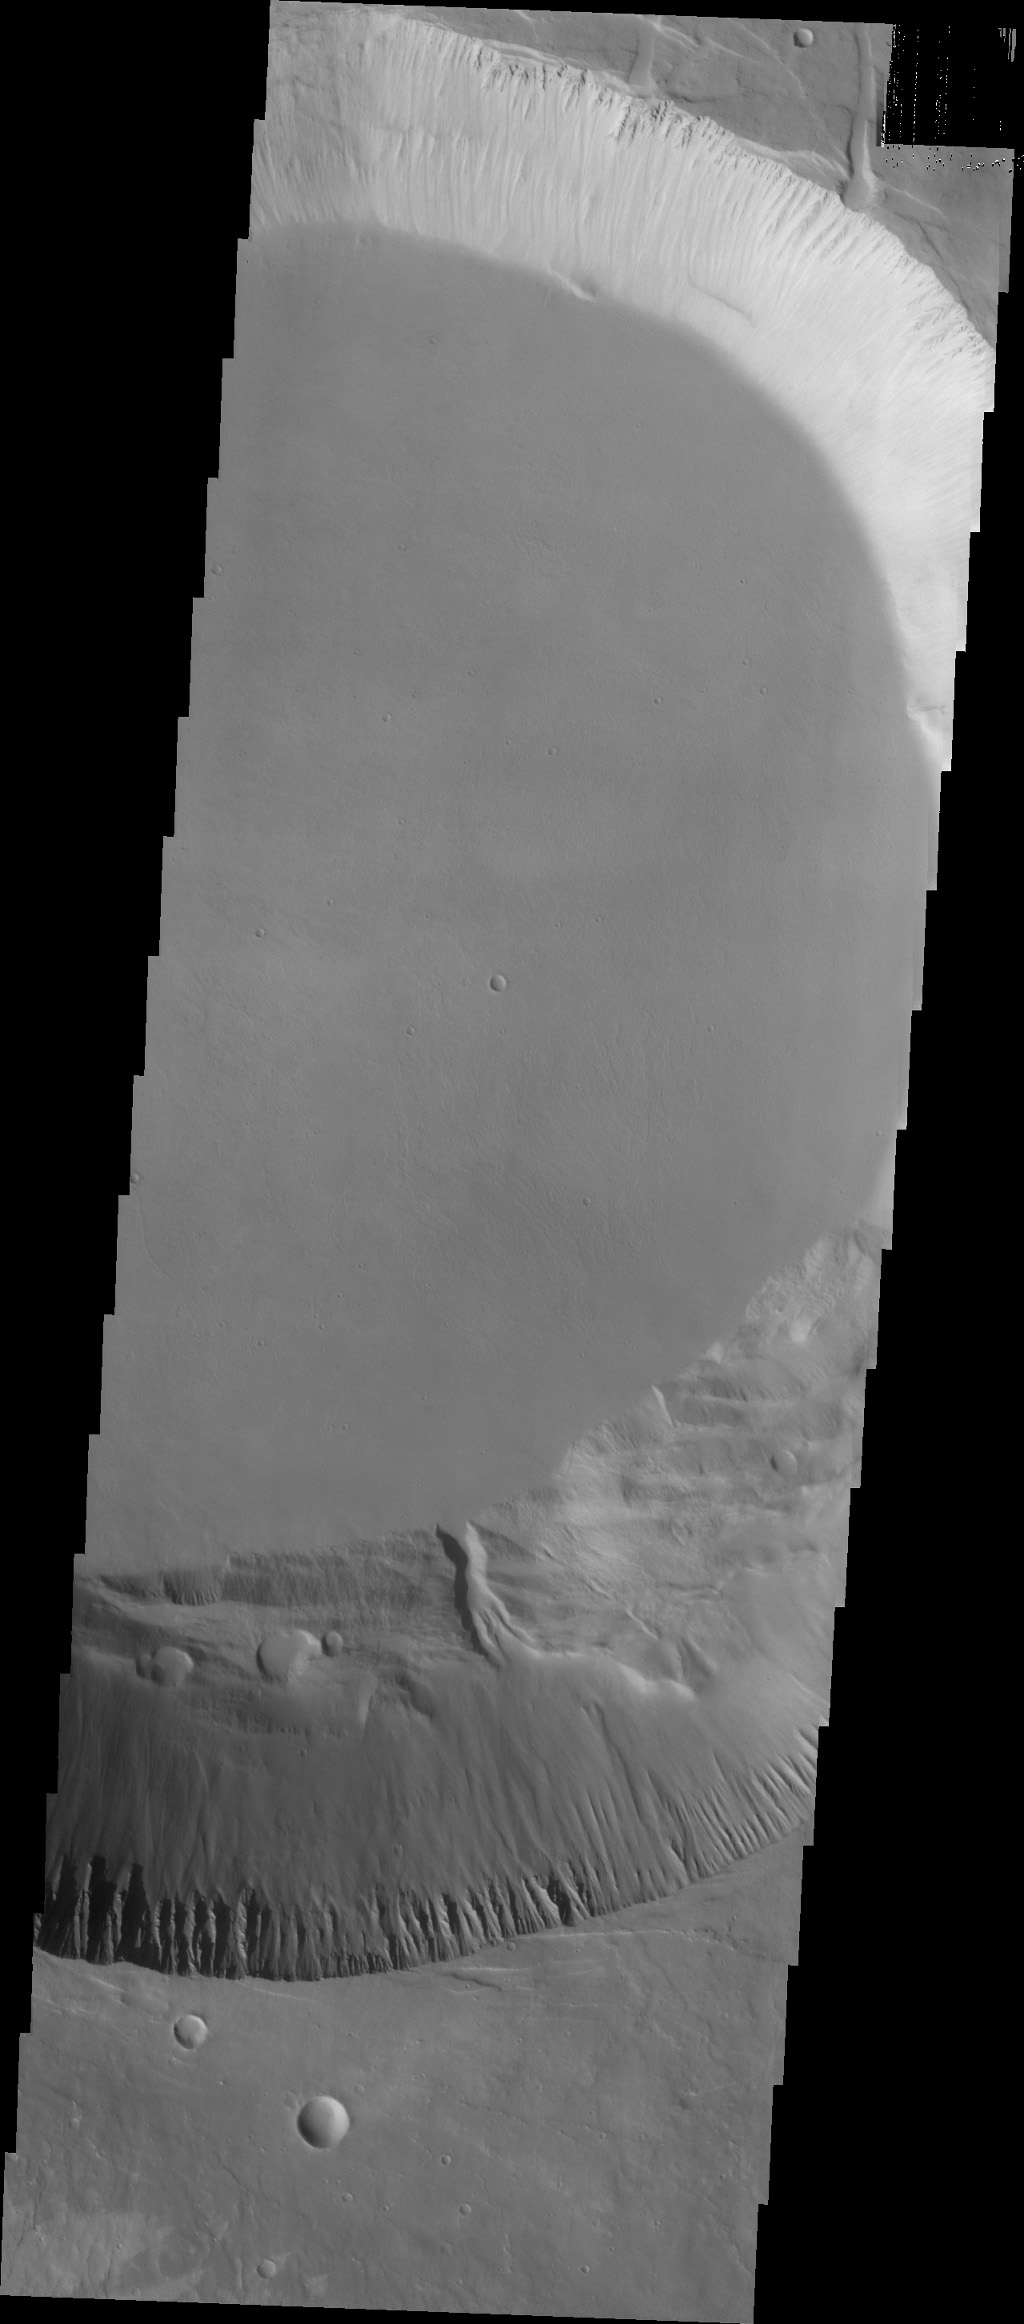 This image from NASA's 2001 Mars Odyssey spacecraft shows part of the smaller summit caldera of Pavonis Mons. This caldera is approximately 5km deep. Pavonis Mons is one of the three aligned Tharsis Volcanoes.